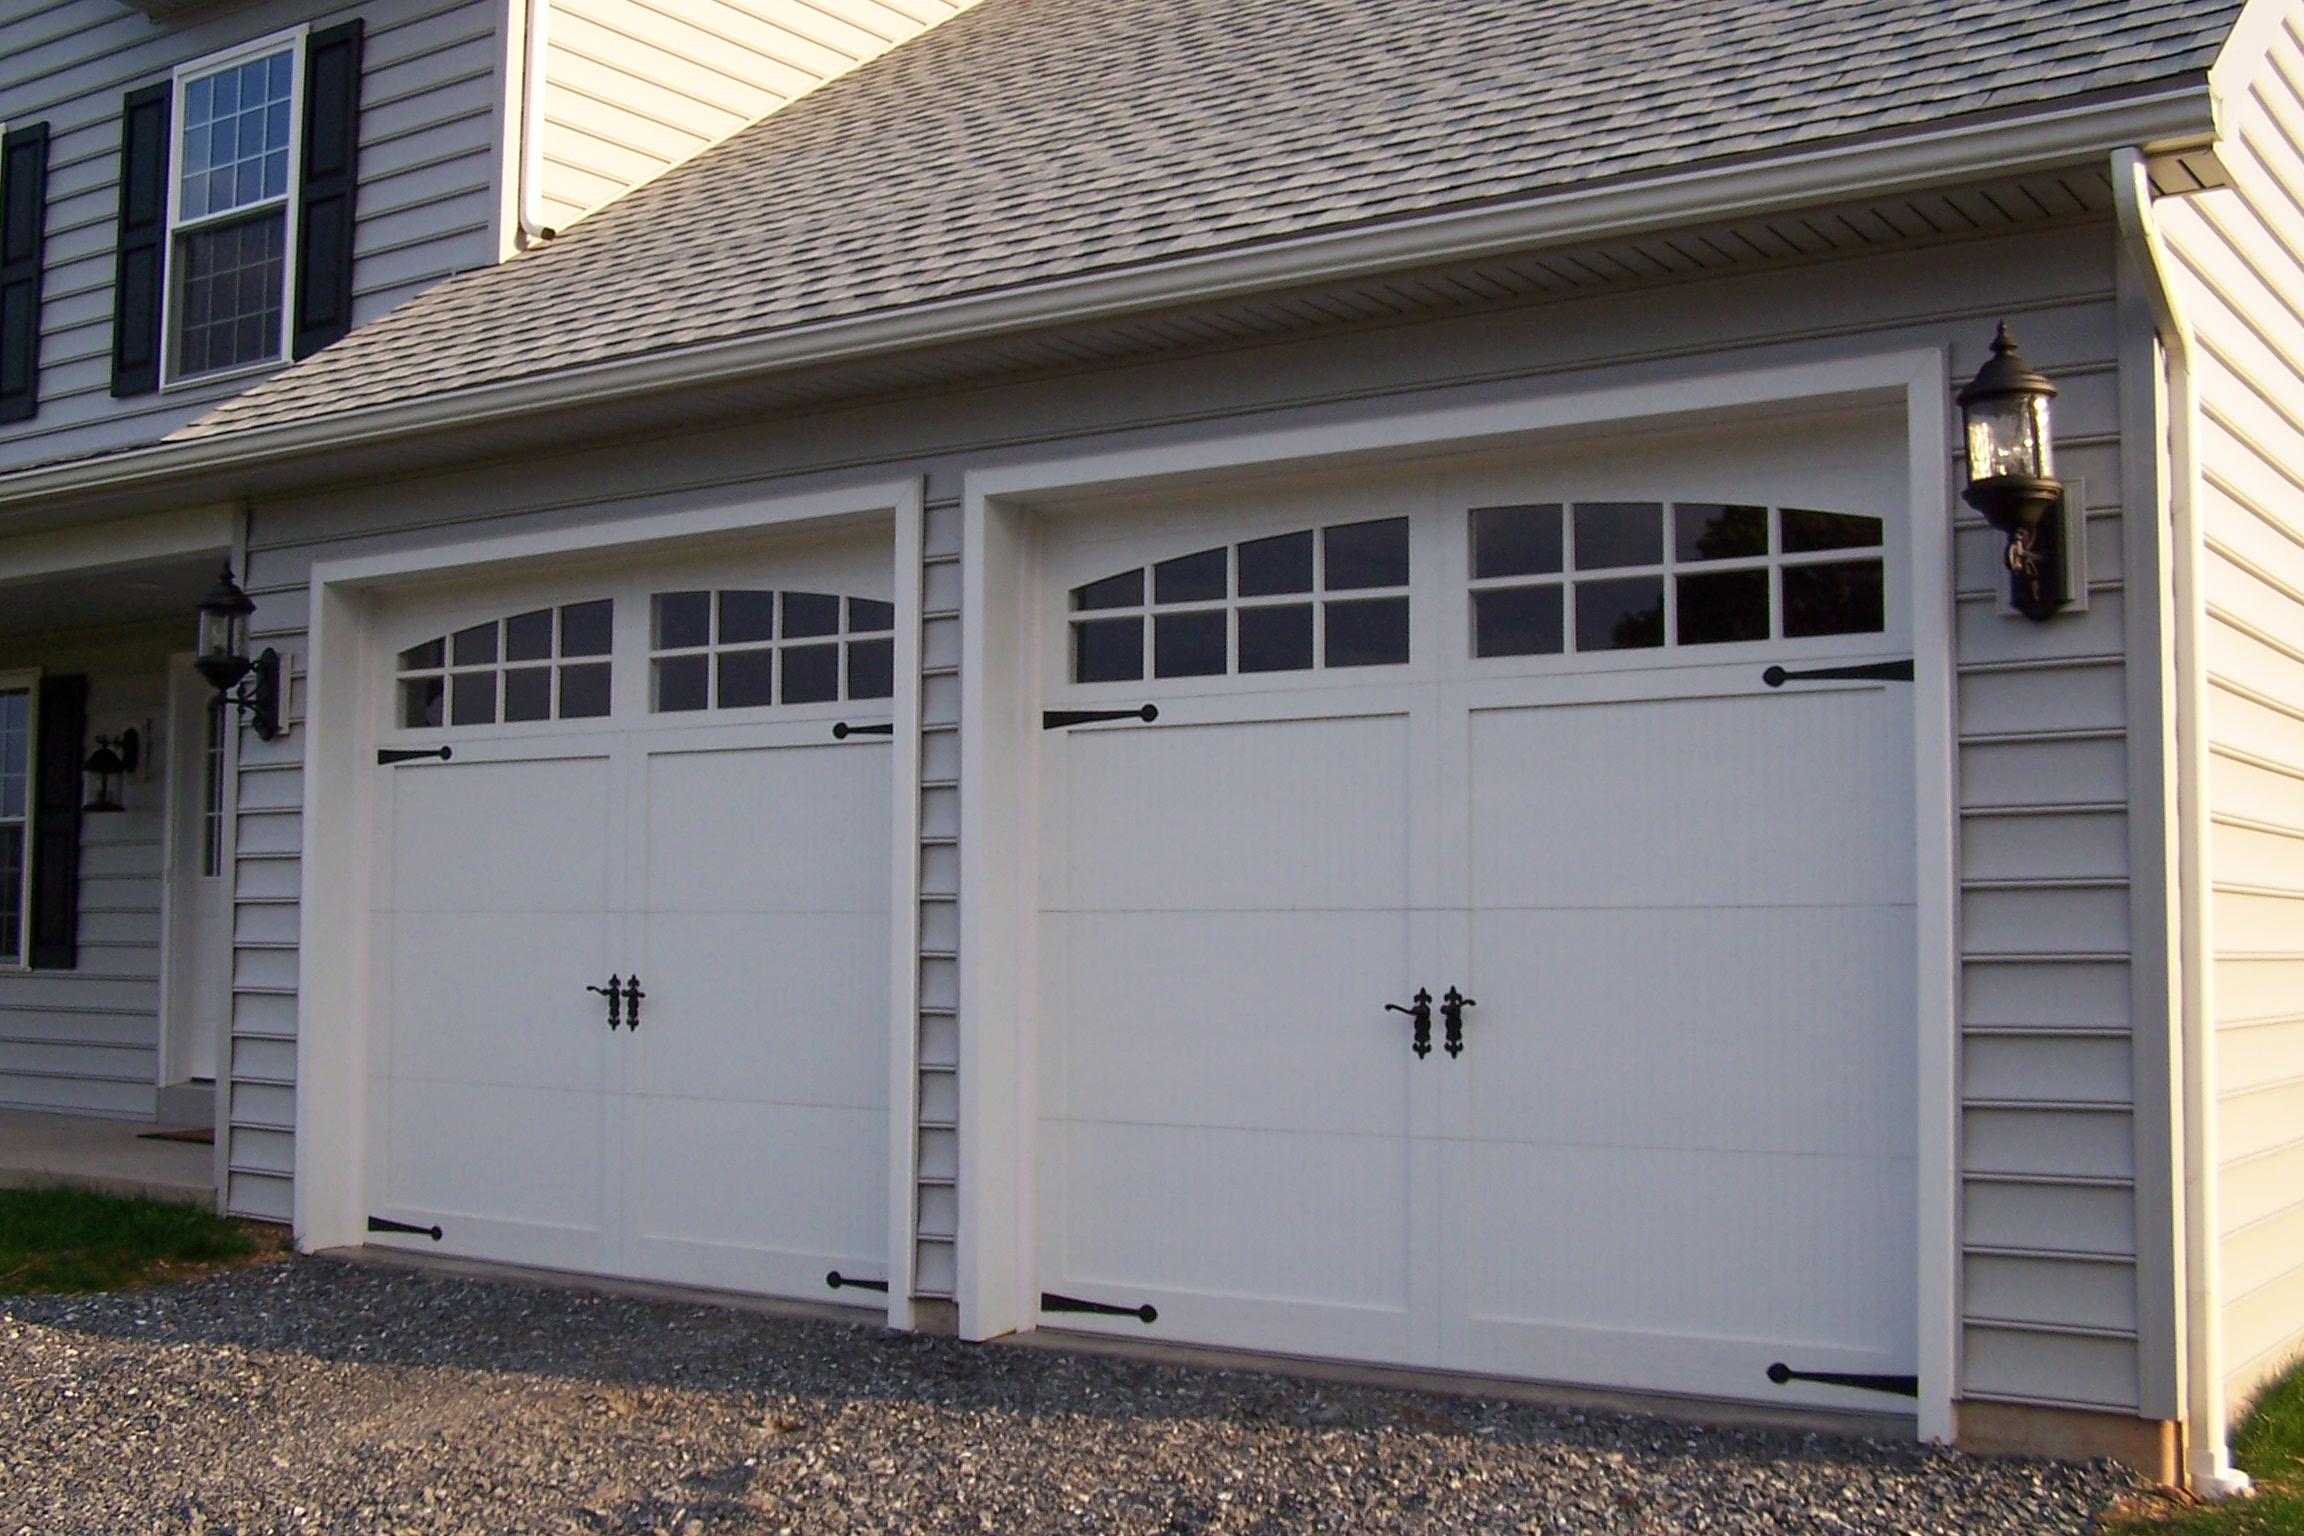 Sectional type steel with exterior cladding overhead garage doors in the style of old carriage house doors